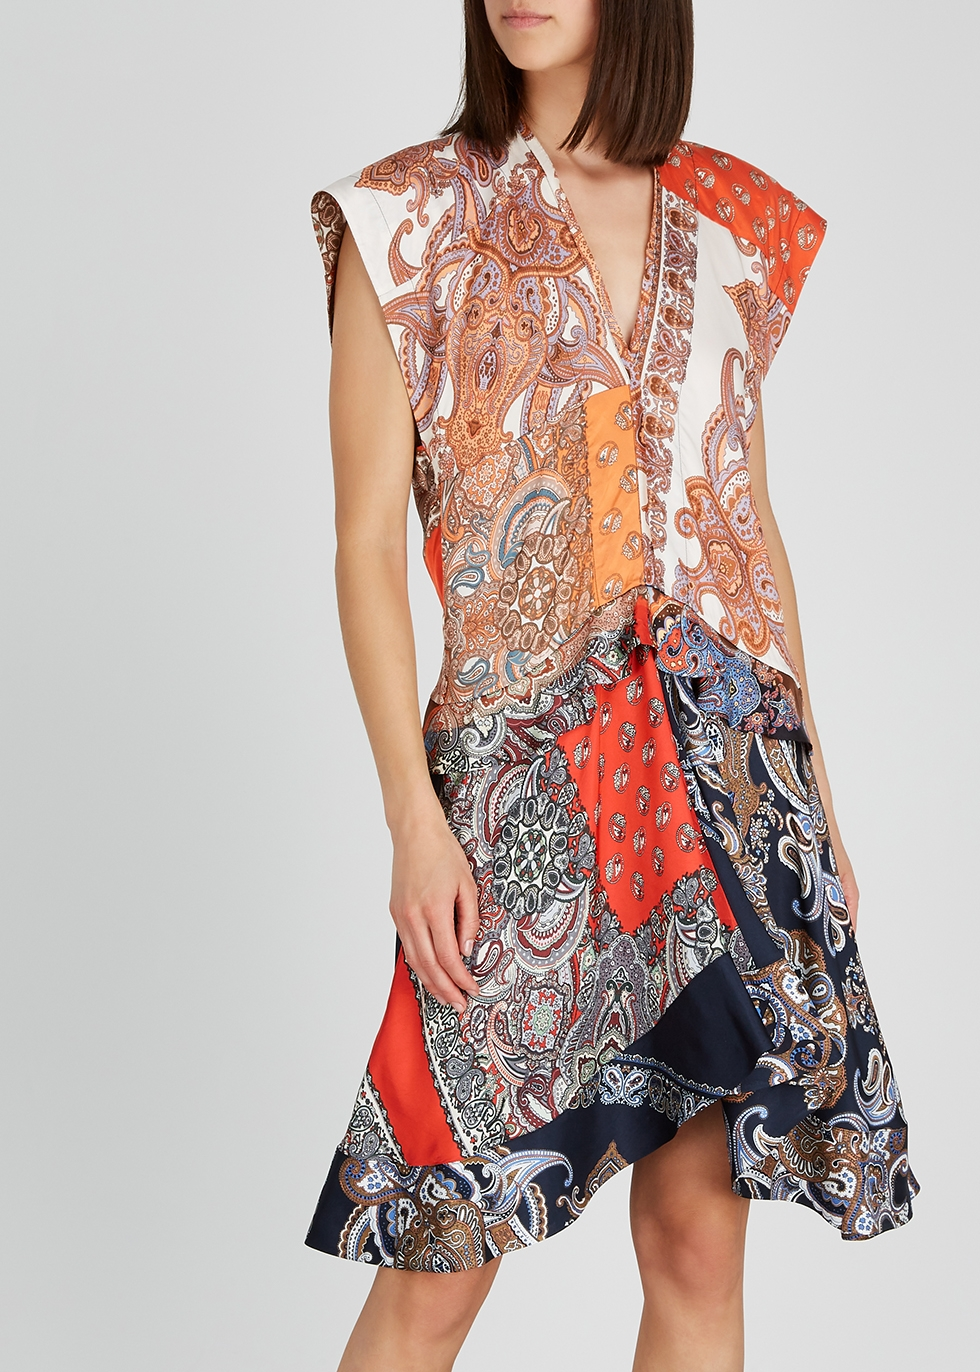 Paisley-print satin dress - Chloé